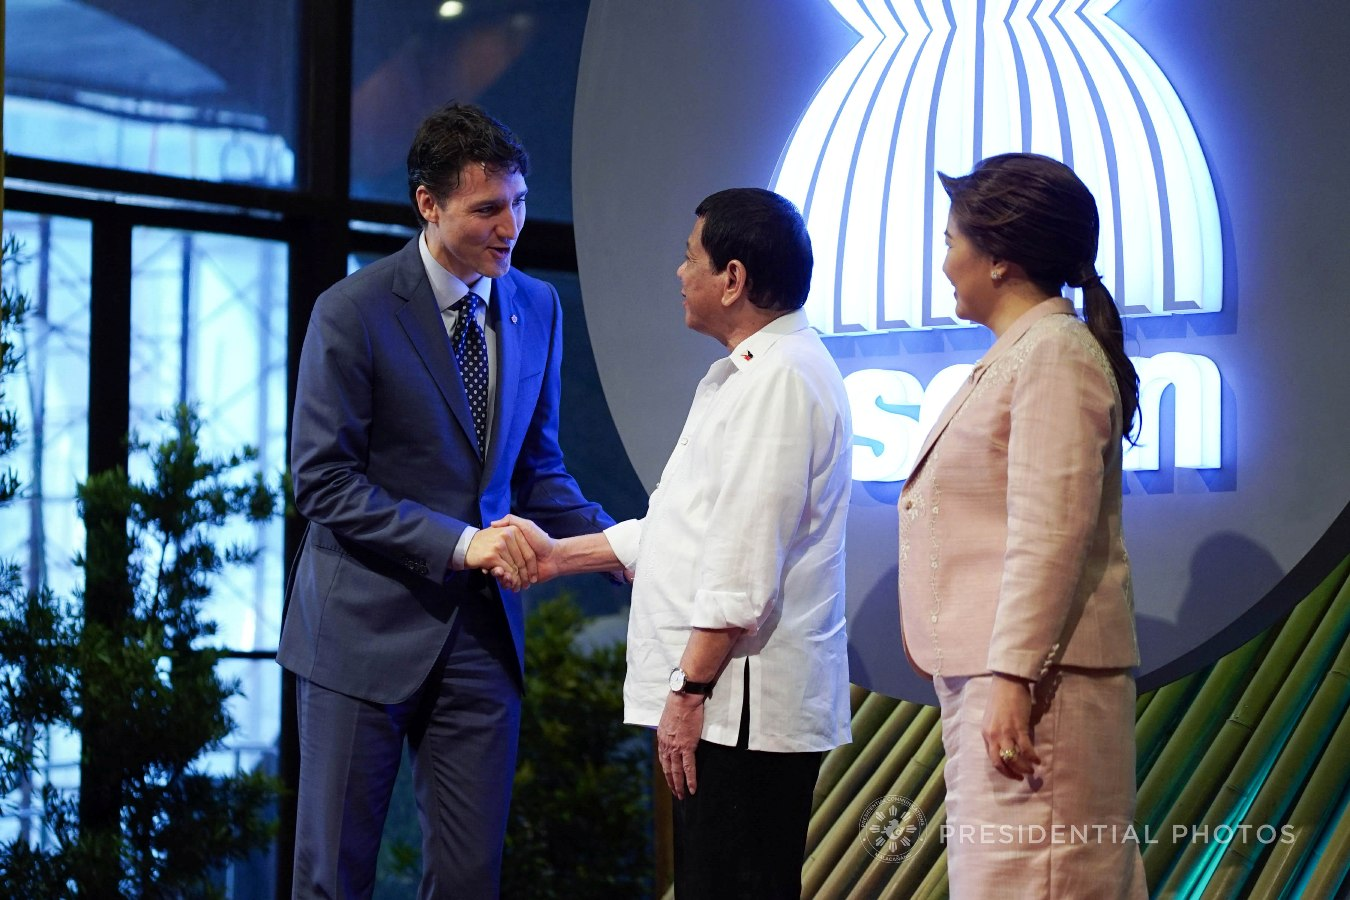 President Rodrigo Roa Duterte and his partner Honeylet welcome Canada Prime Minister Justin Trudeau prior to the opening of the 31st Association of Southeast Asian Nations (ASEAN) Summit and Related Summits at the Cultural Center of the Philippines in Pasay City on November 13, 2017. KING RODRIGUEZ/PRESIDENTIAL PHOTO